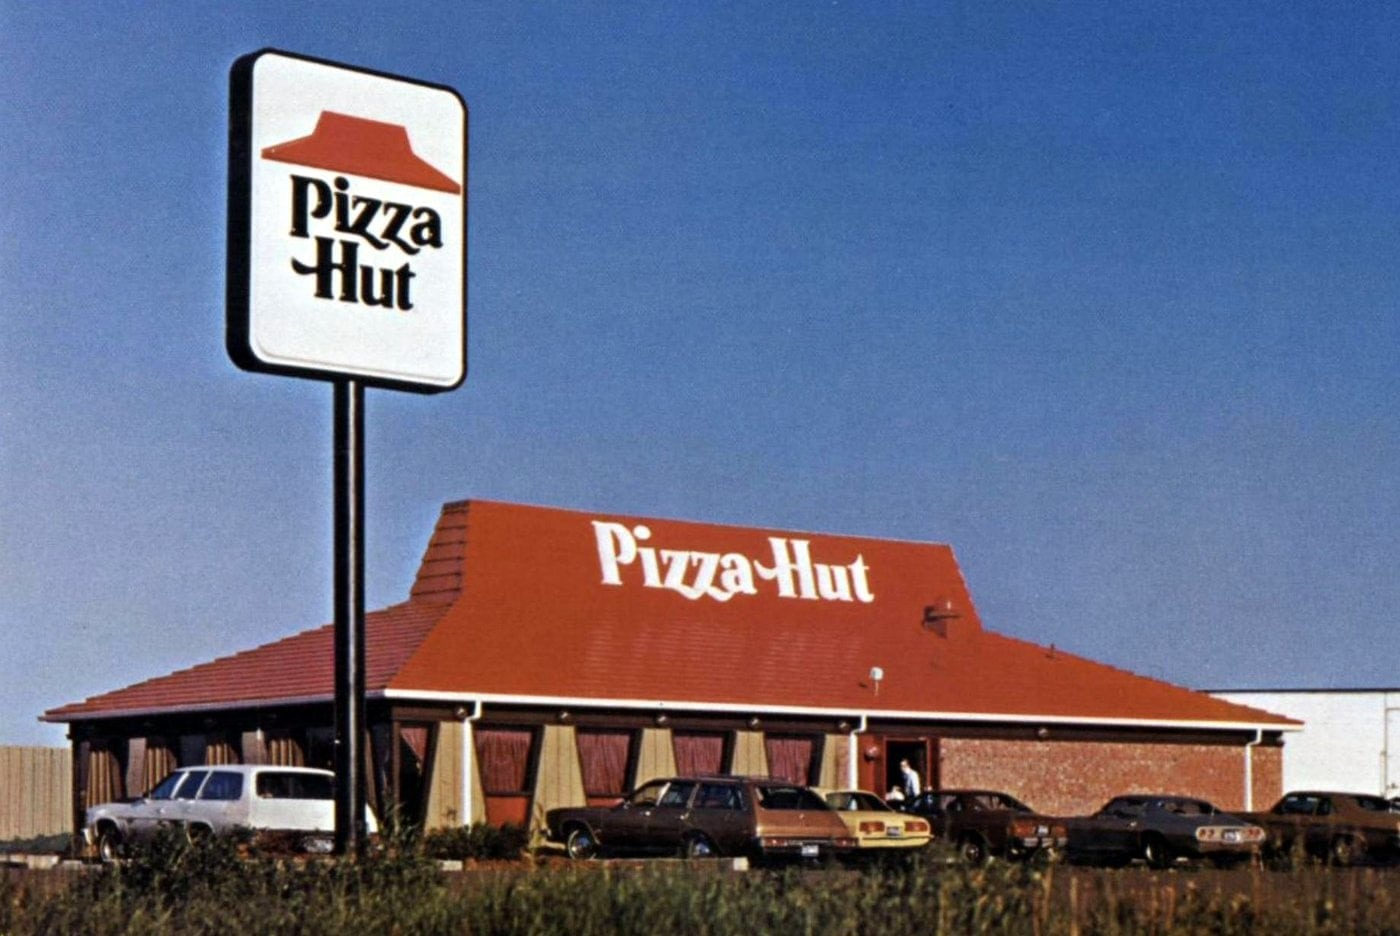 Vintage Pizza Hut restaurants and foods from the 70s